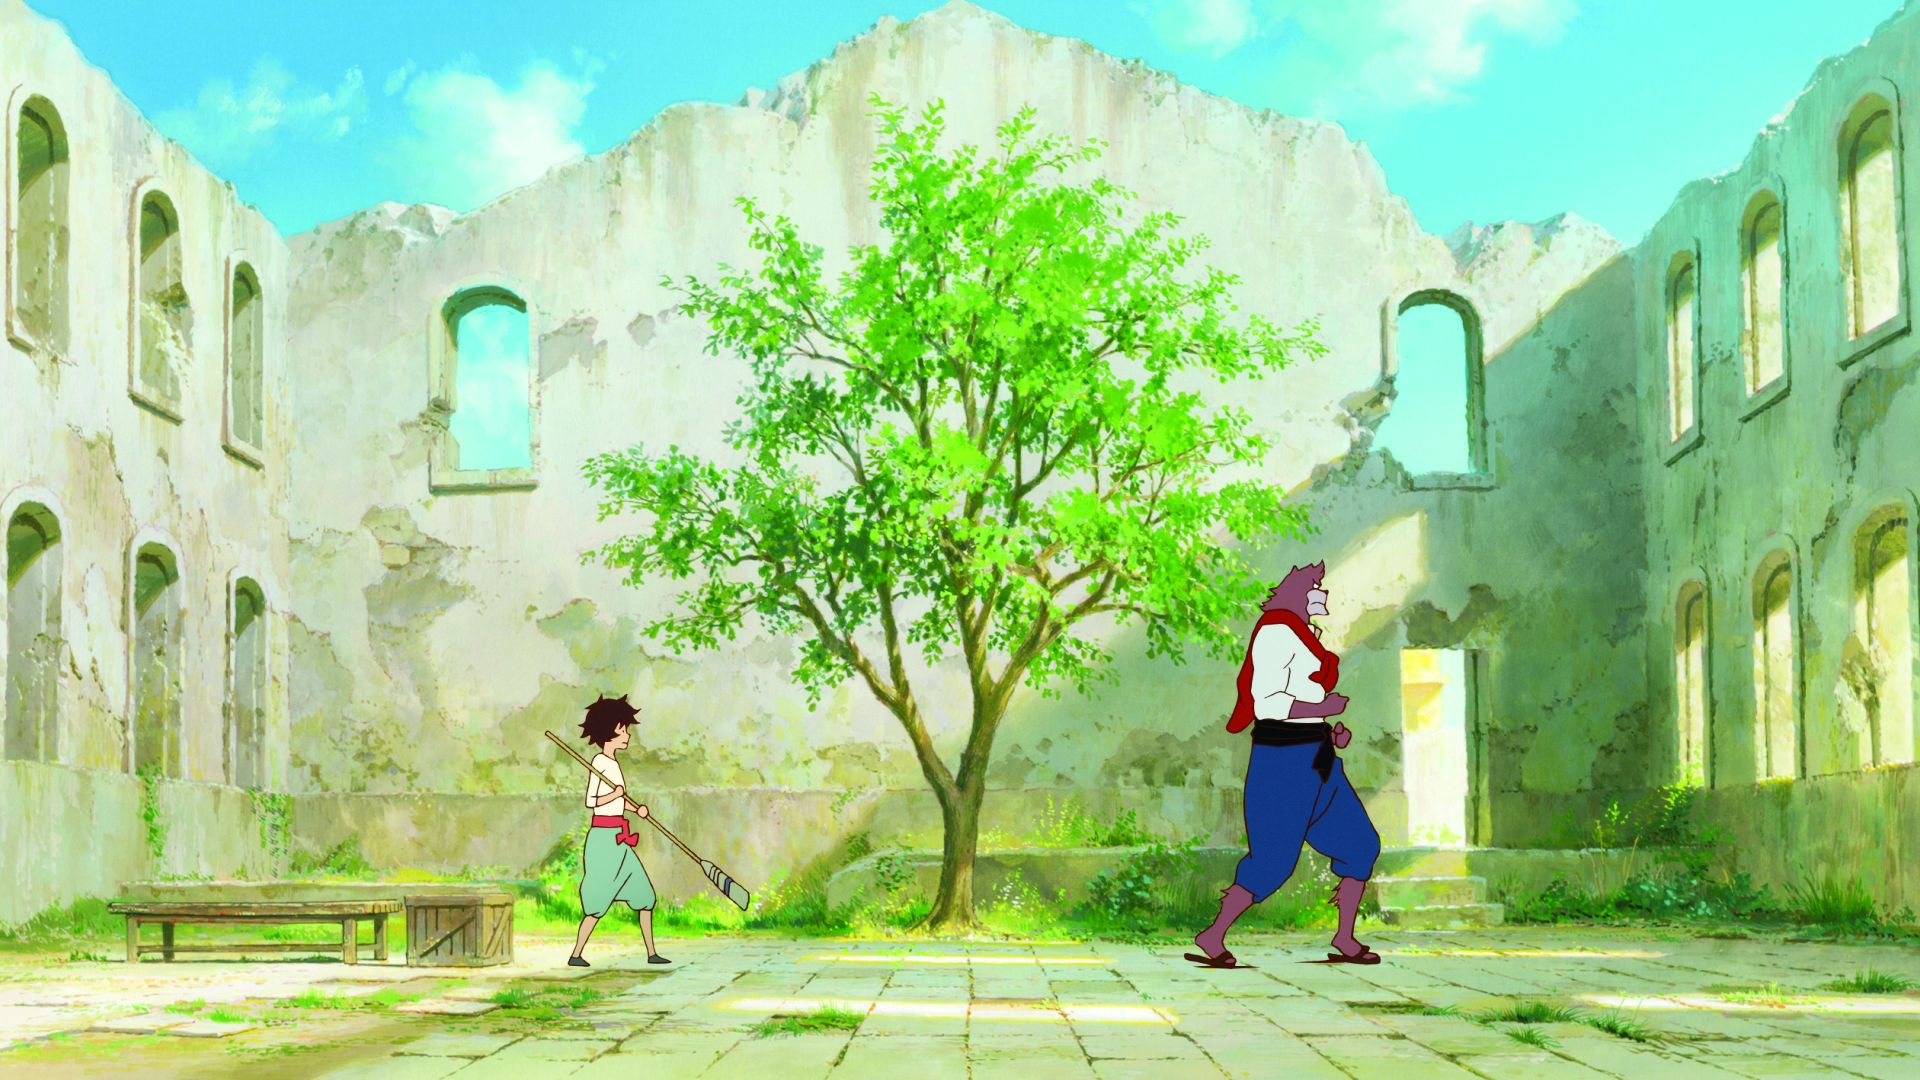 Copyright2015 The Boy And The Beast Film Partners Ressources 2015